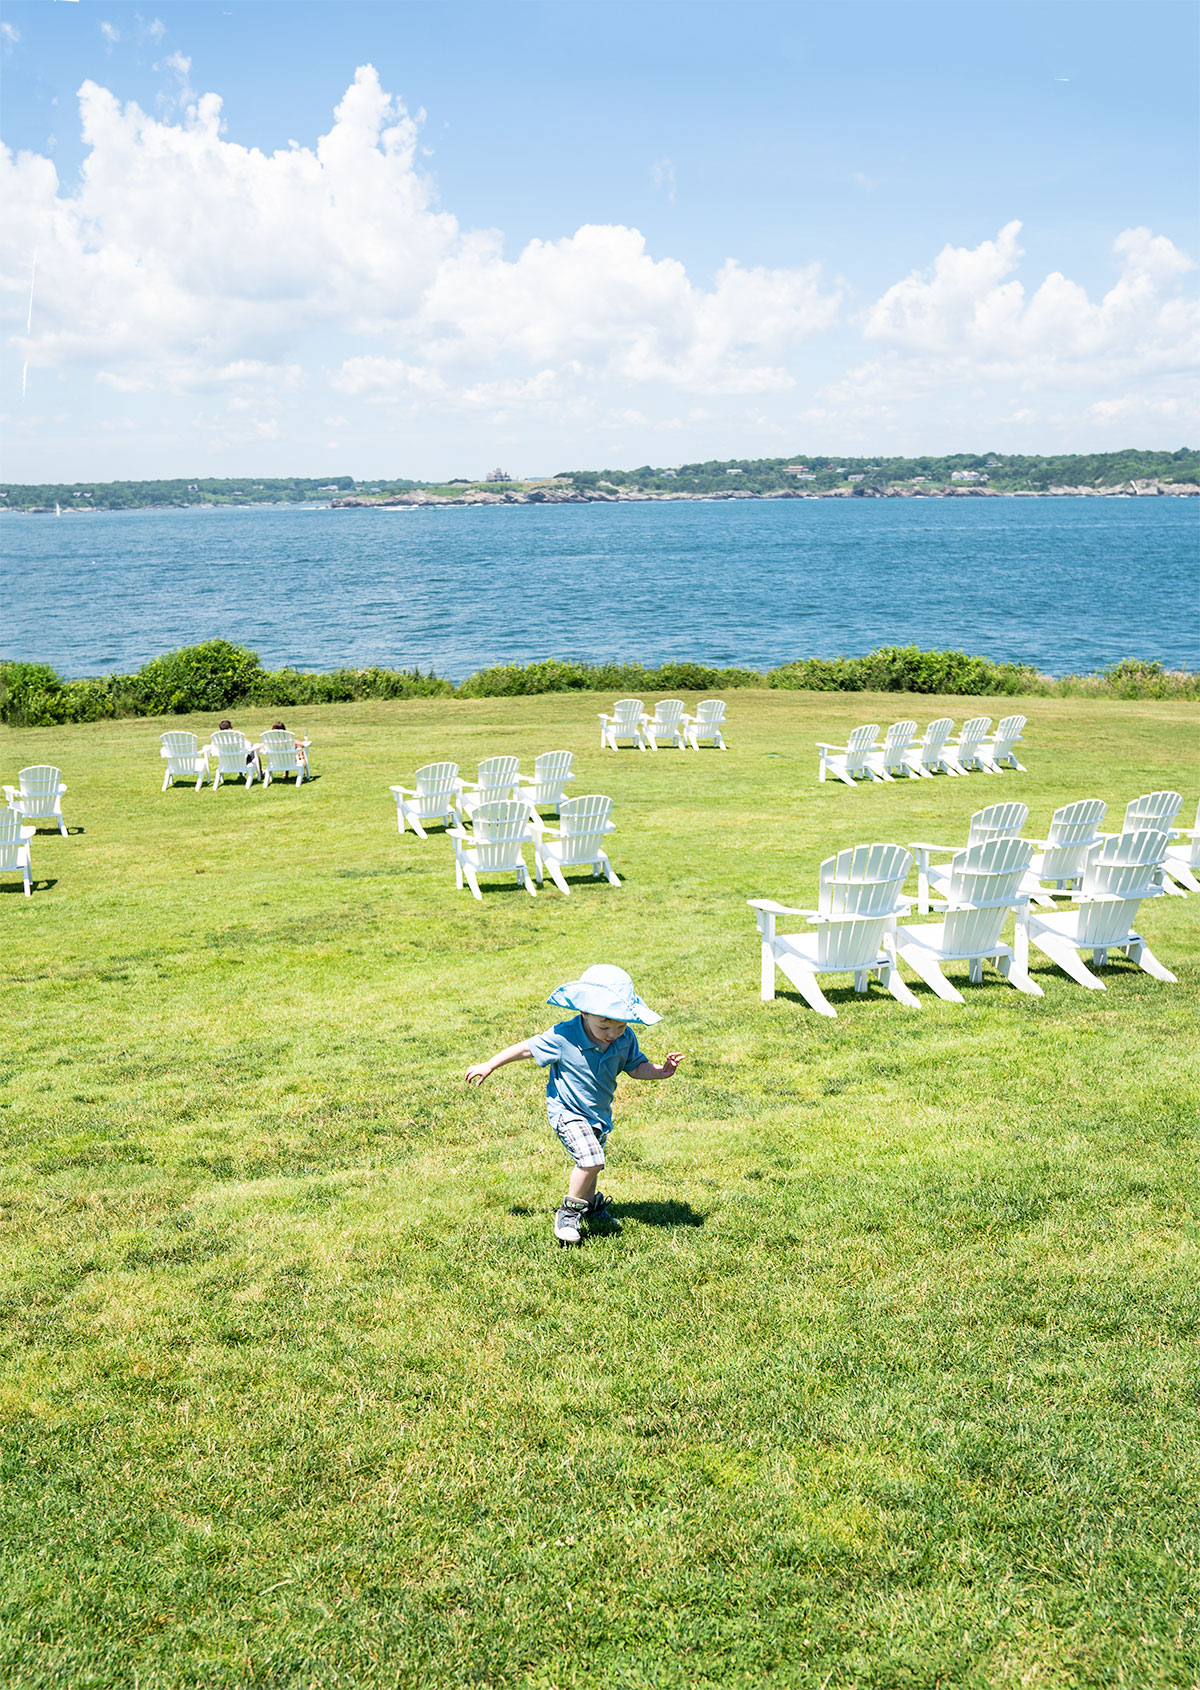 The-Lawn-At-Castle-Hill-View-Newport-RI